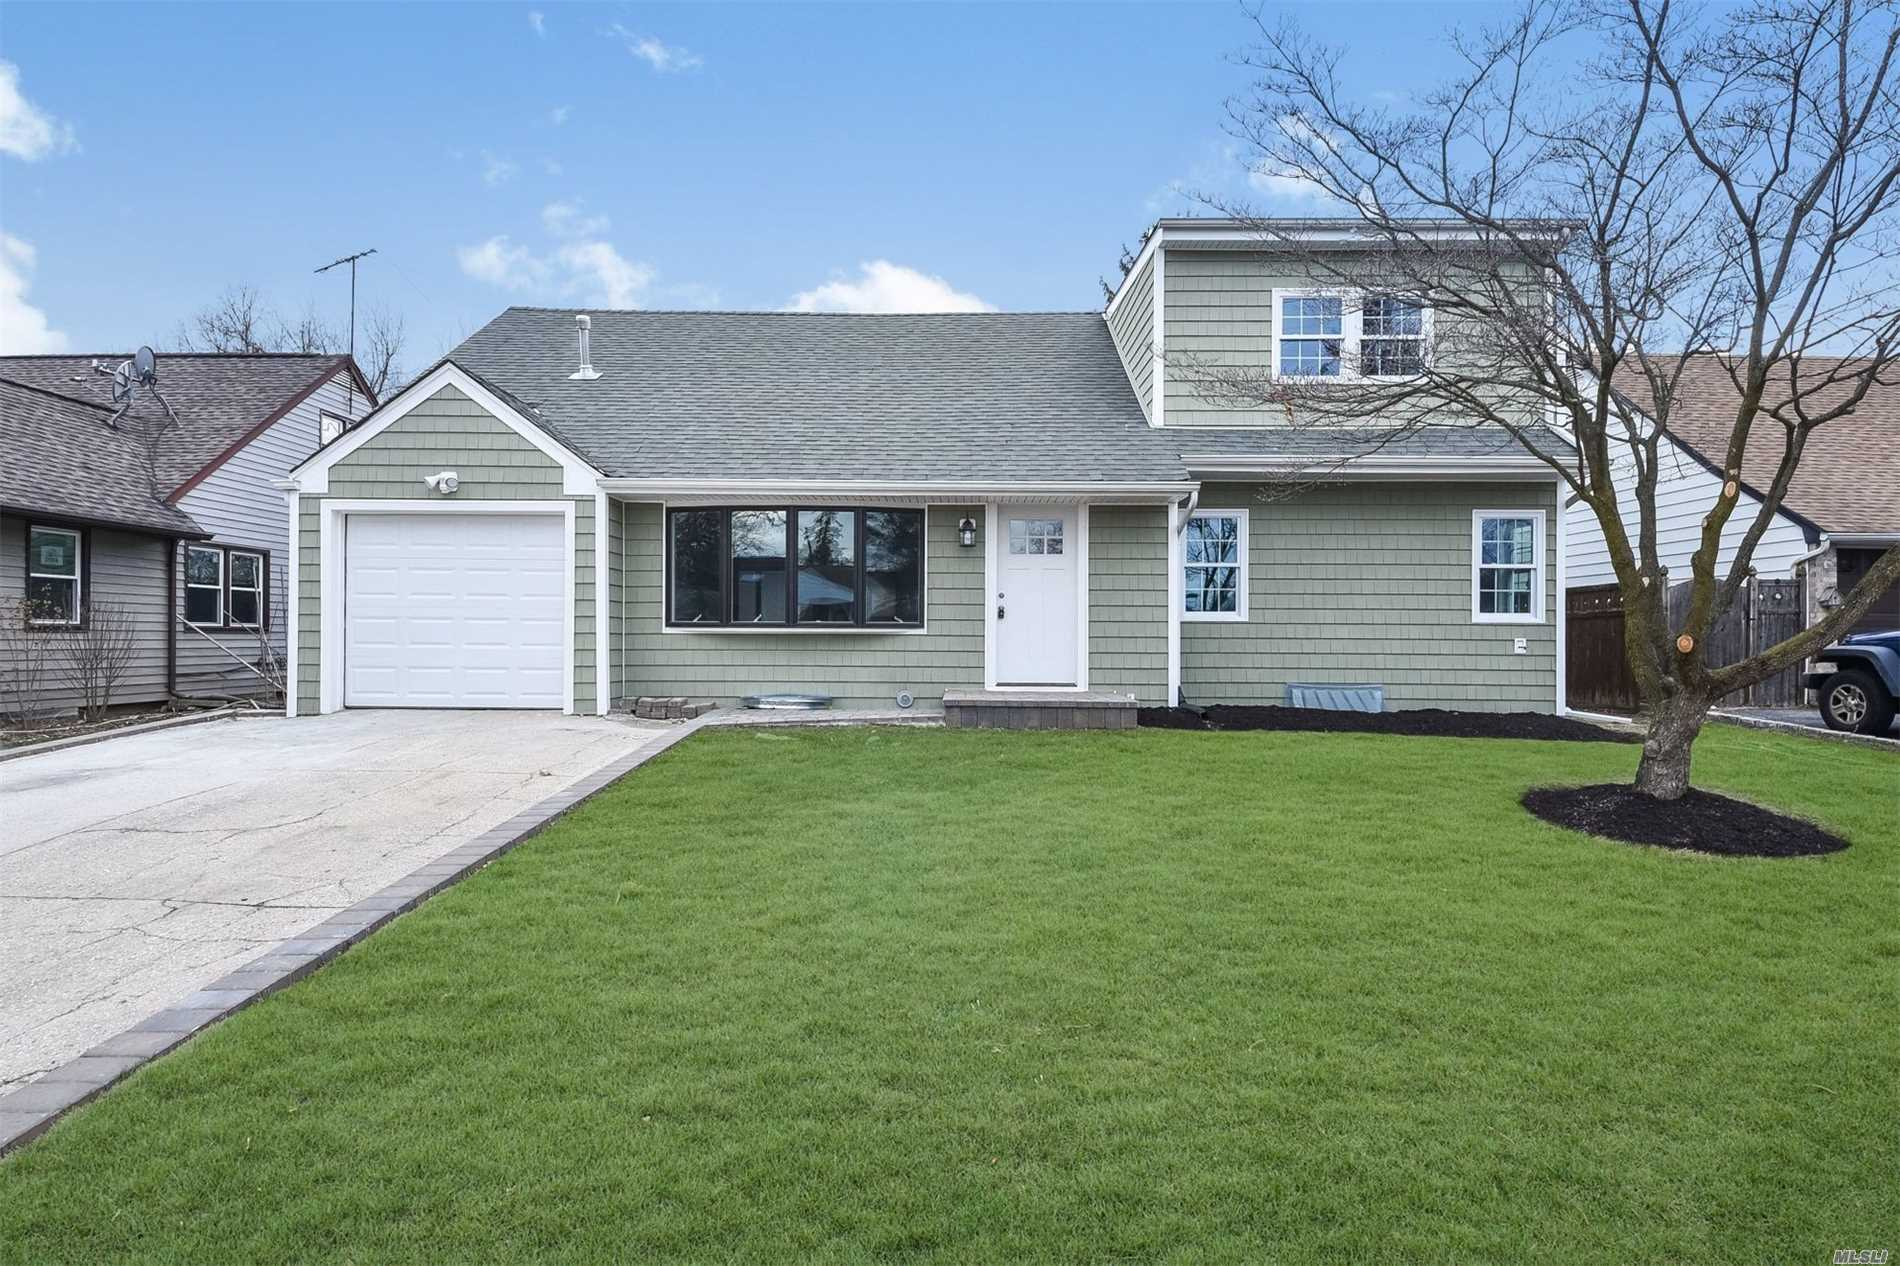 Fully Renovated 5 Bedroom 2 Full Bath. Move In Condition On A 61X100 Lot. New Andersen Windows, Beautiful Oak Floors, White Cabinets With Granite Countertops.Close To All!